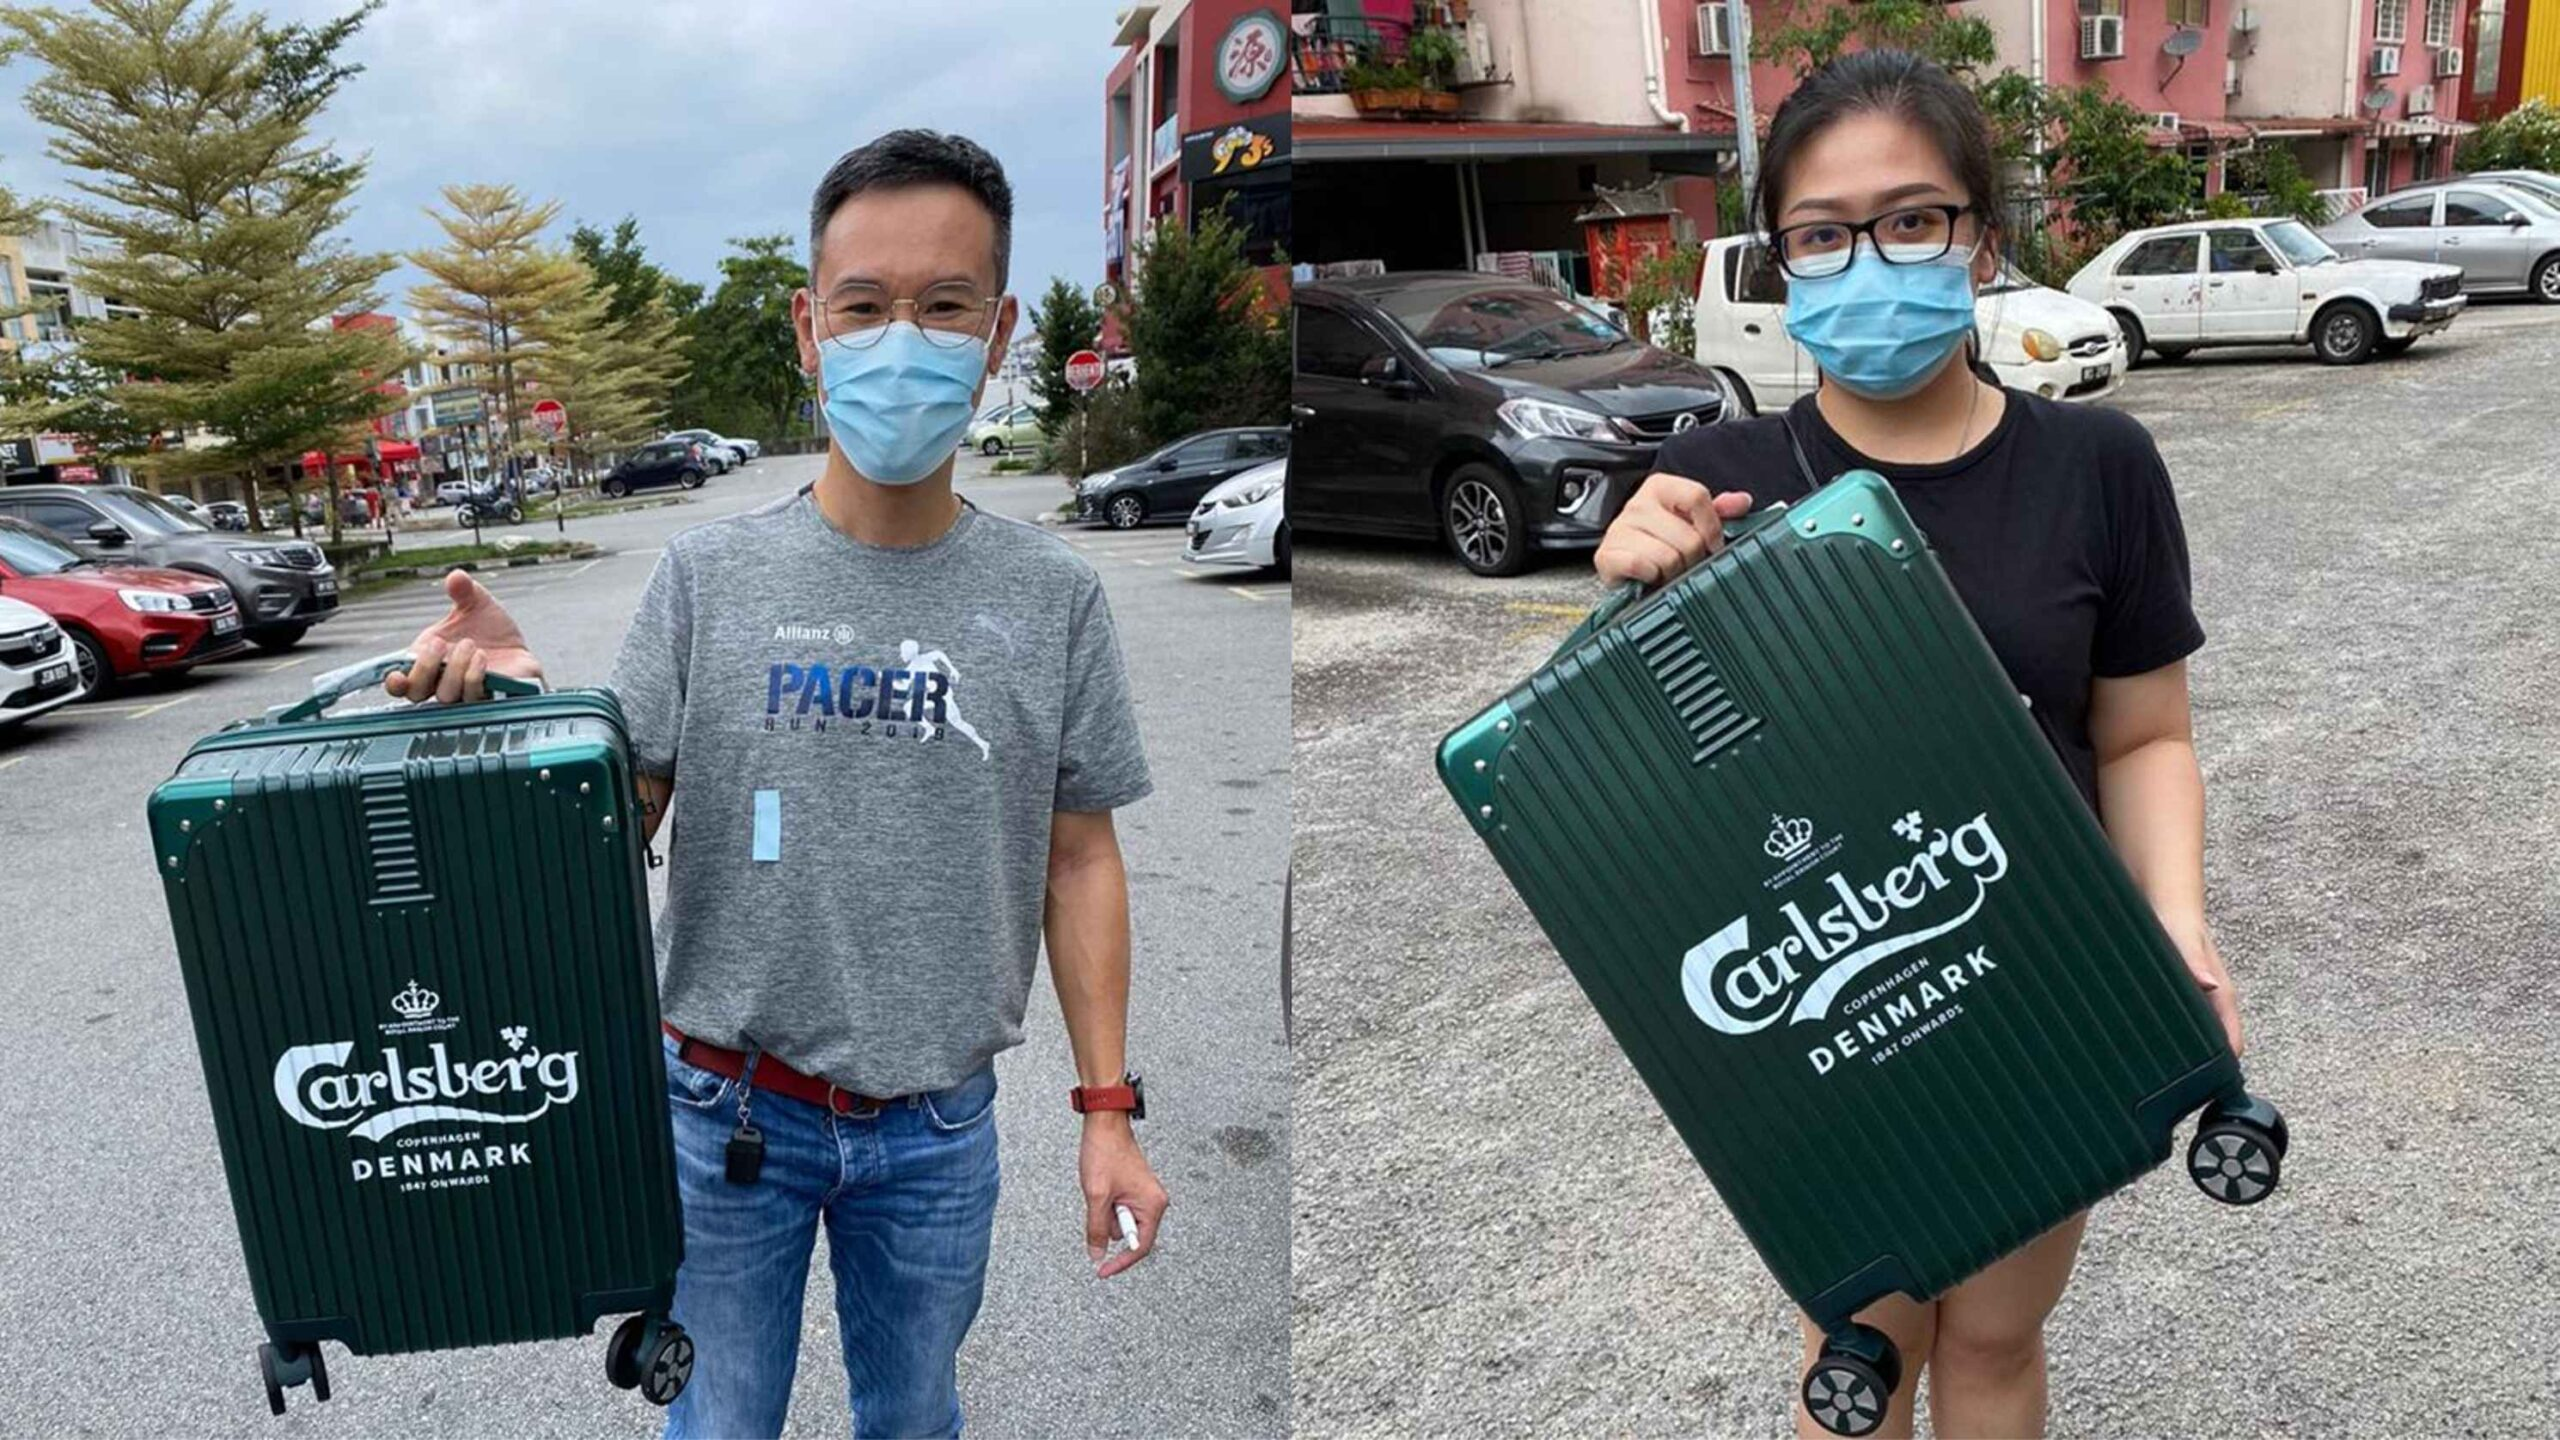 More winners for the Carlsberg CNY contest